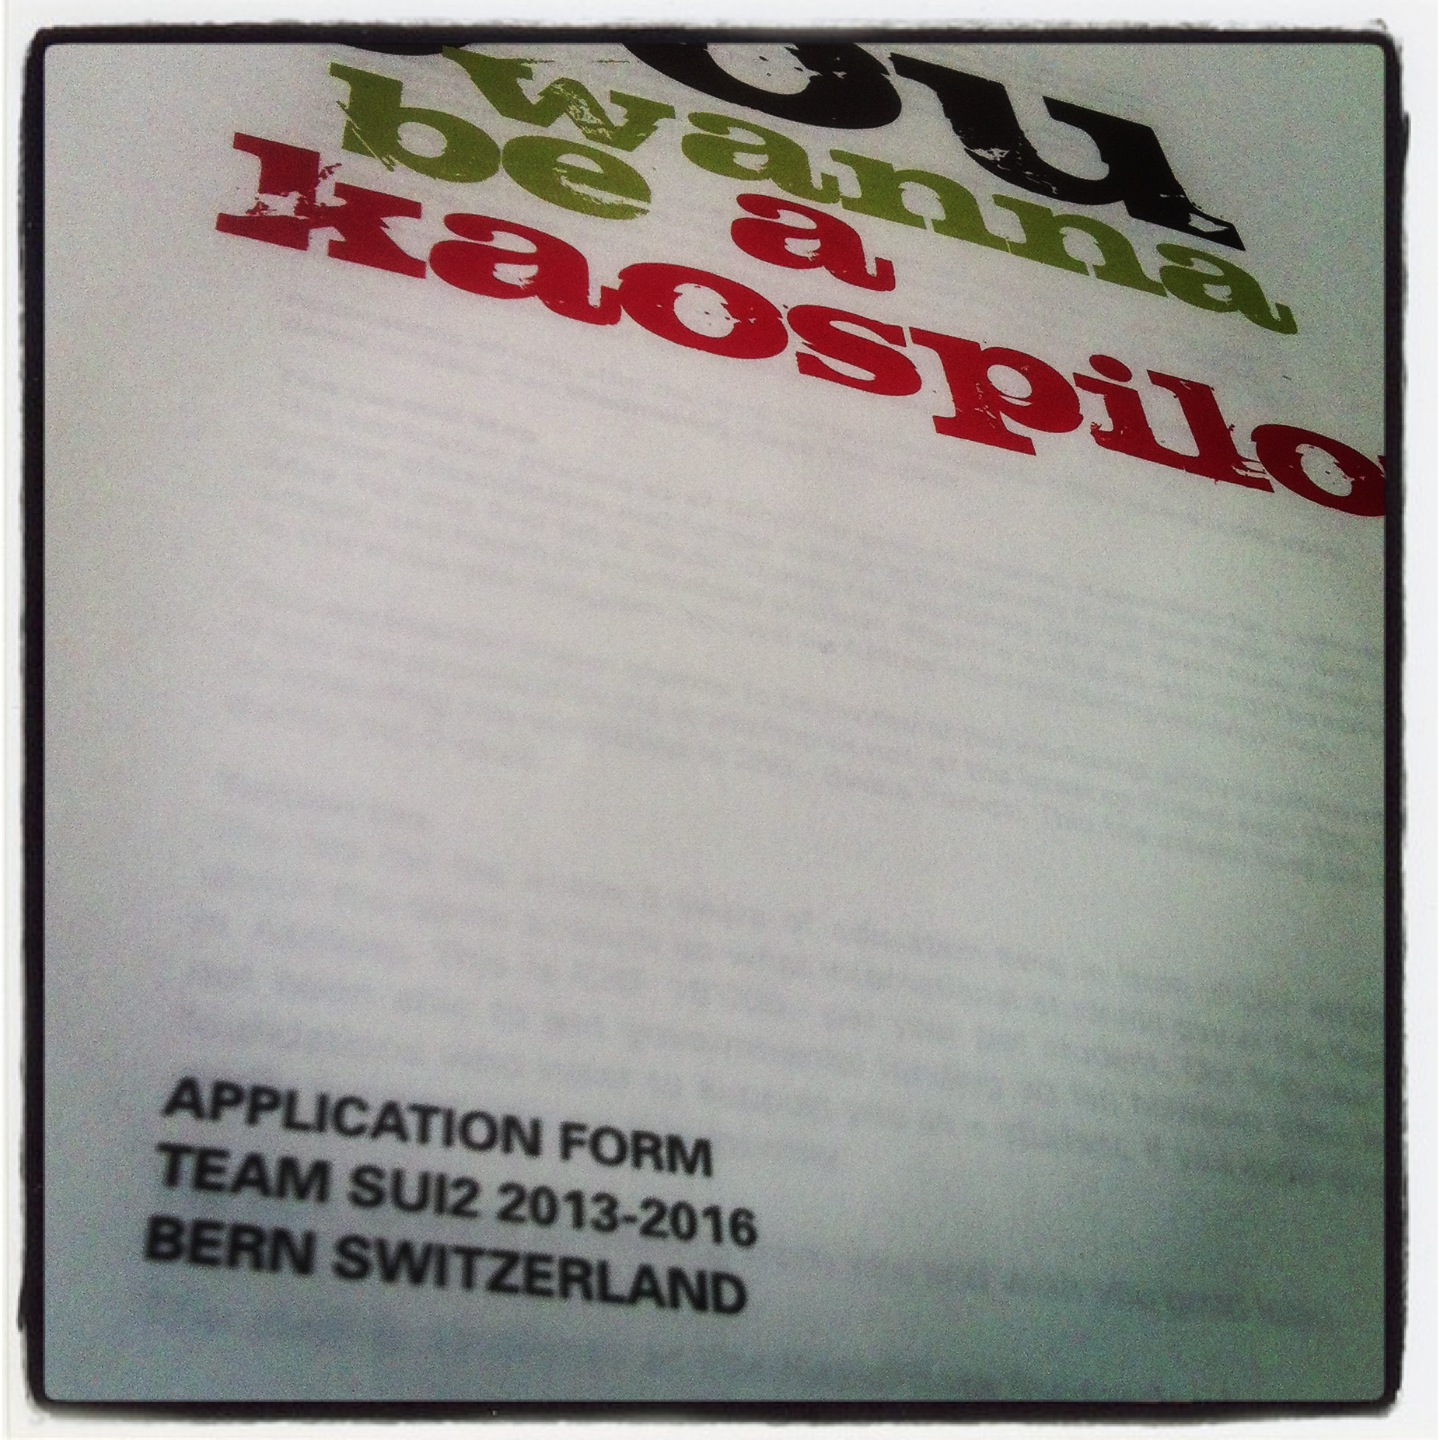 The application form ©lowereast.dk